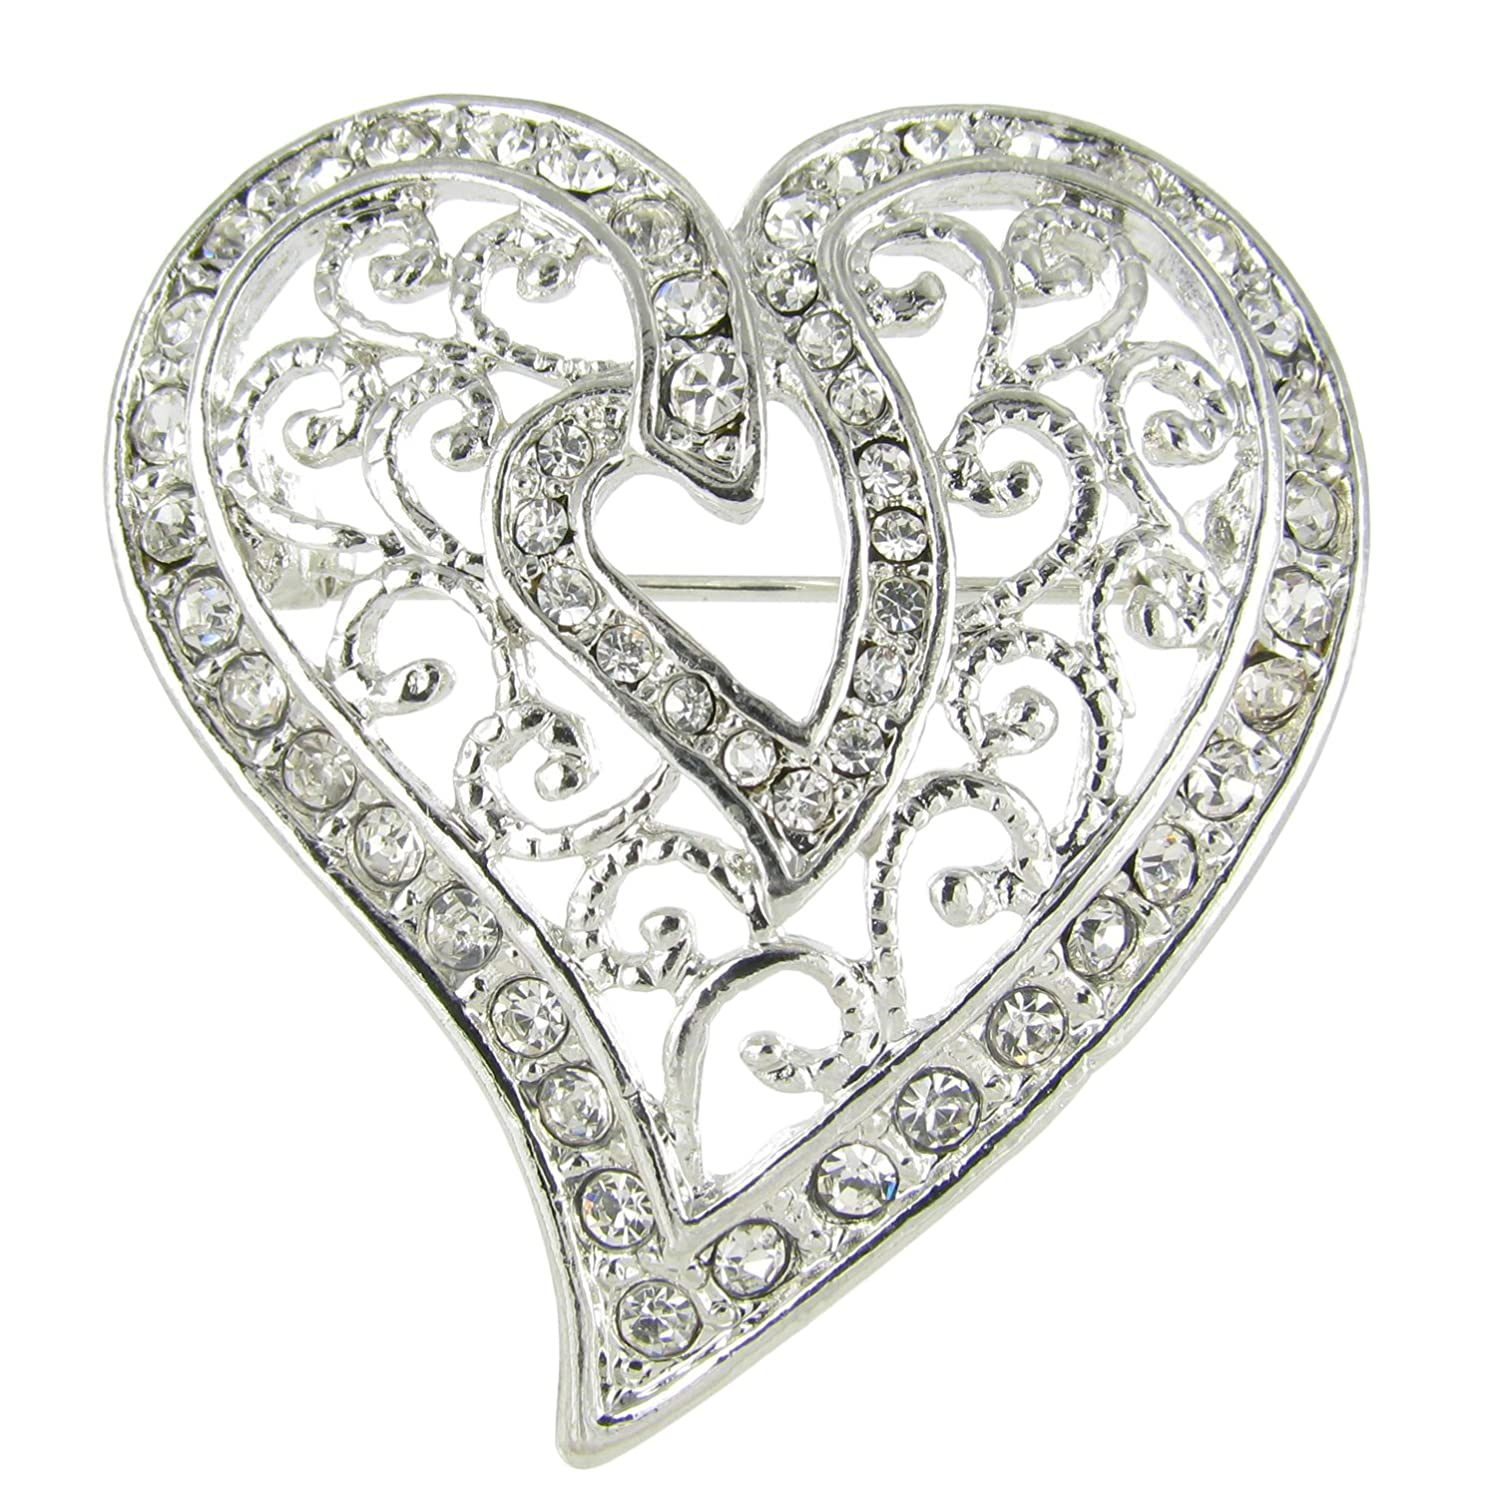 Arabesque Love Swirls Silver Heart Rhinestone Brooch Pin with Clear Crystals RUL 0094320CL